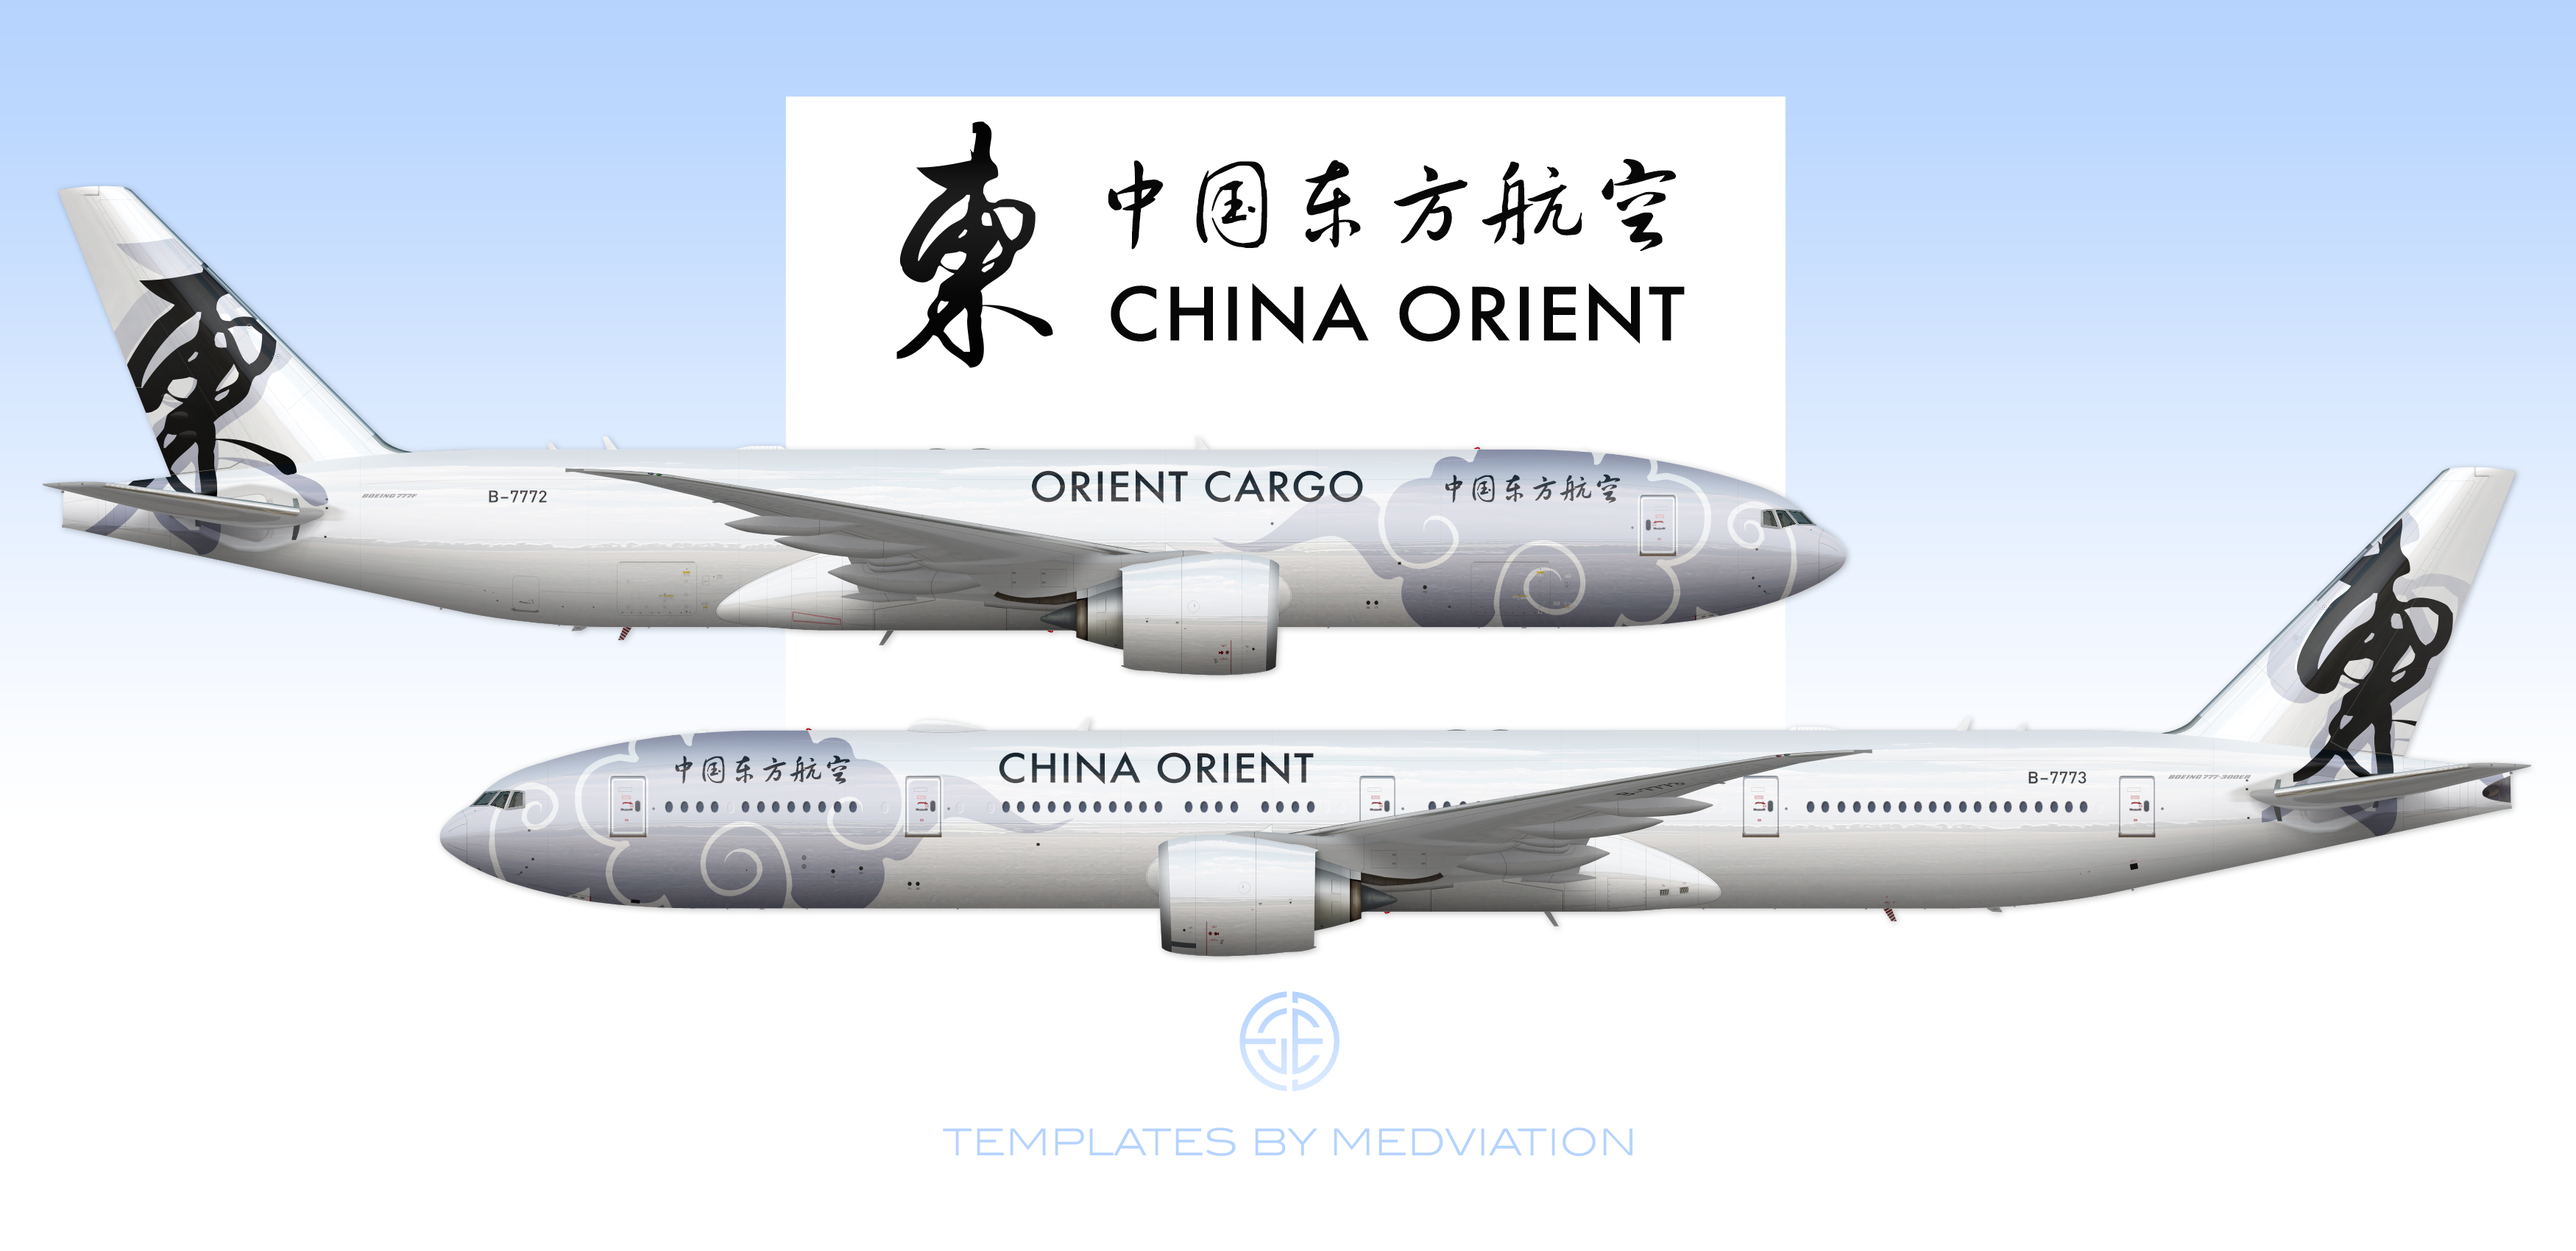 china orient orient cargo boeing 777 300er freighter edge s rh airline empires com Boeing 777 Backlog Boeing 747-400F